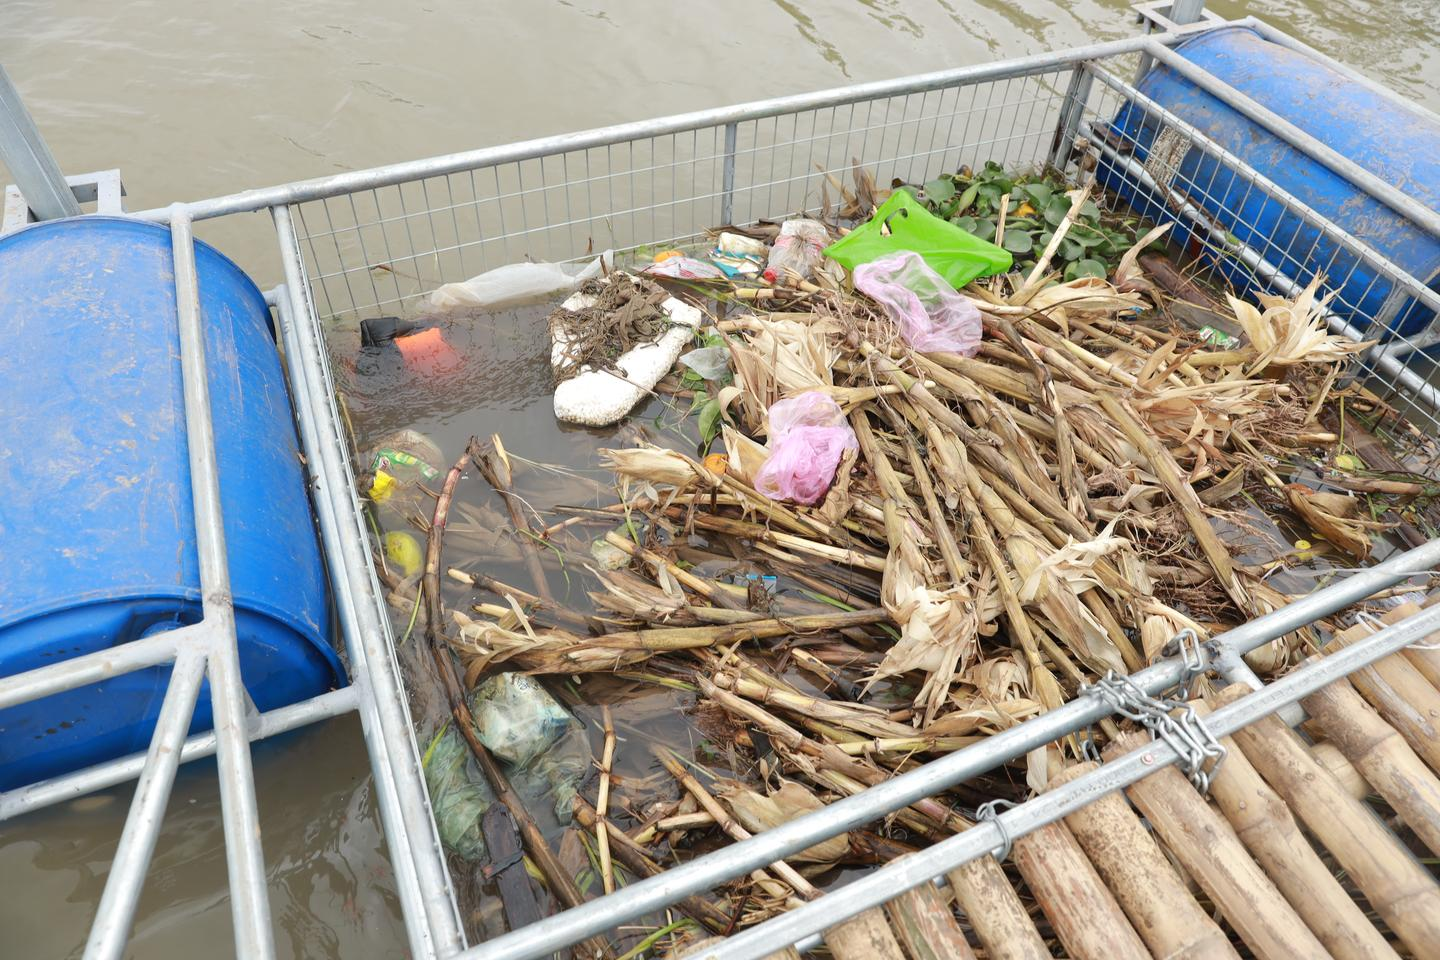 Local operatives will remove the trapped trash every three days for processing